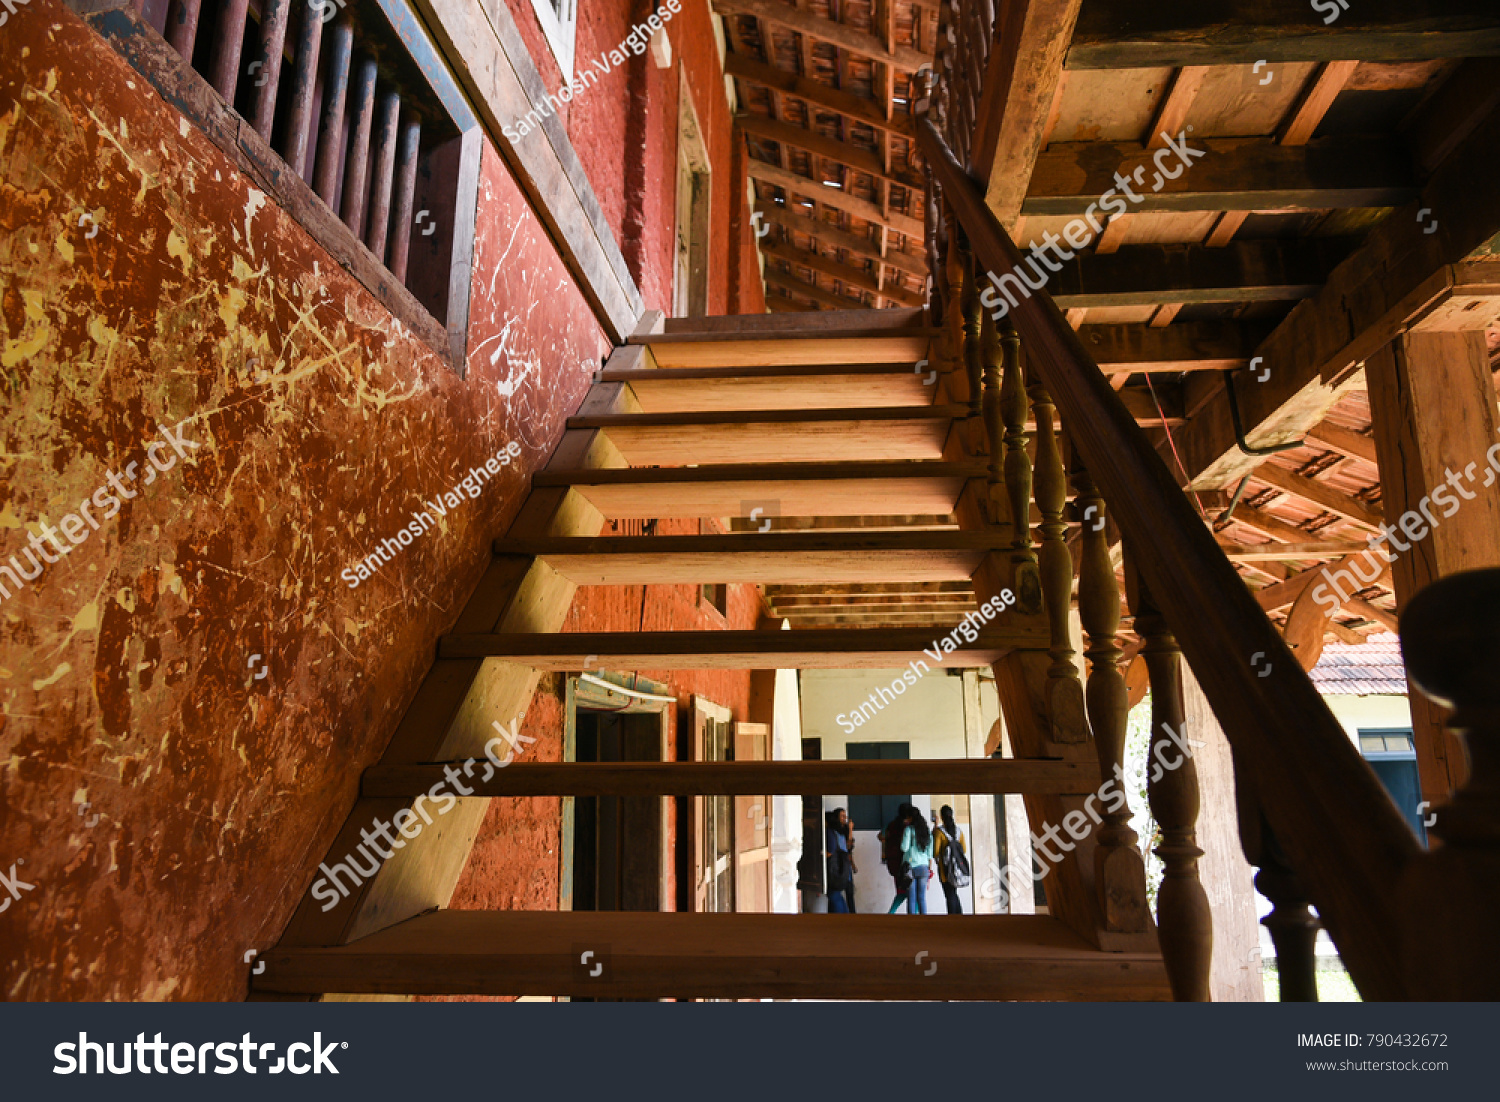 Kerala India January 12 Old Vintage Stock Photo Edit Now 790432672 Staircase Diagram Classic Stairs And Remodeling In A House Or Building